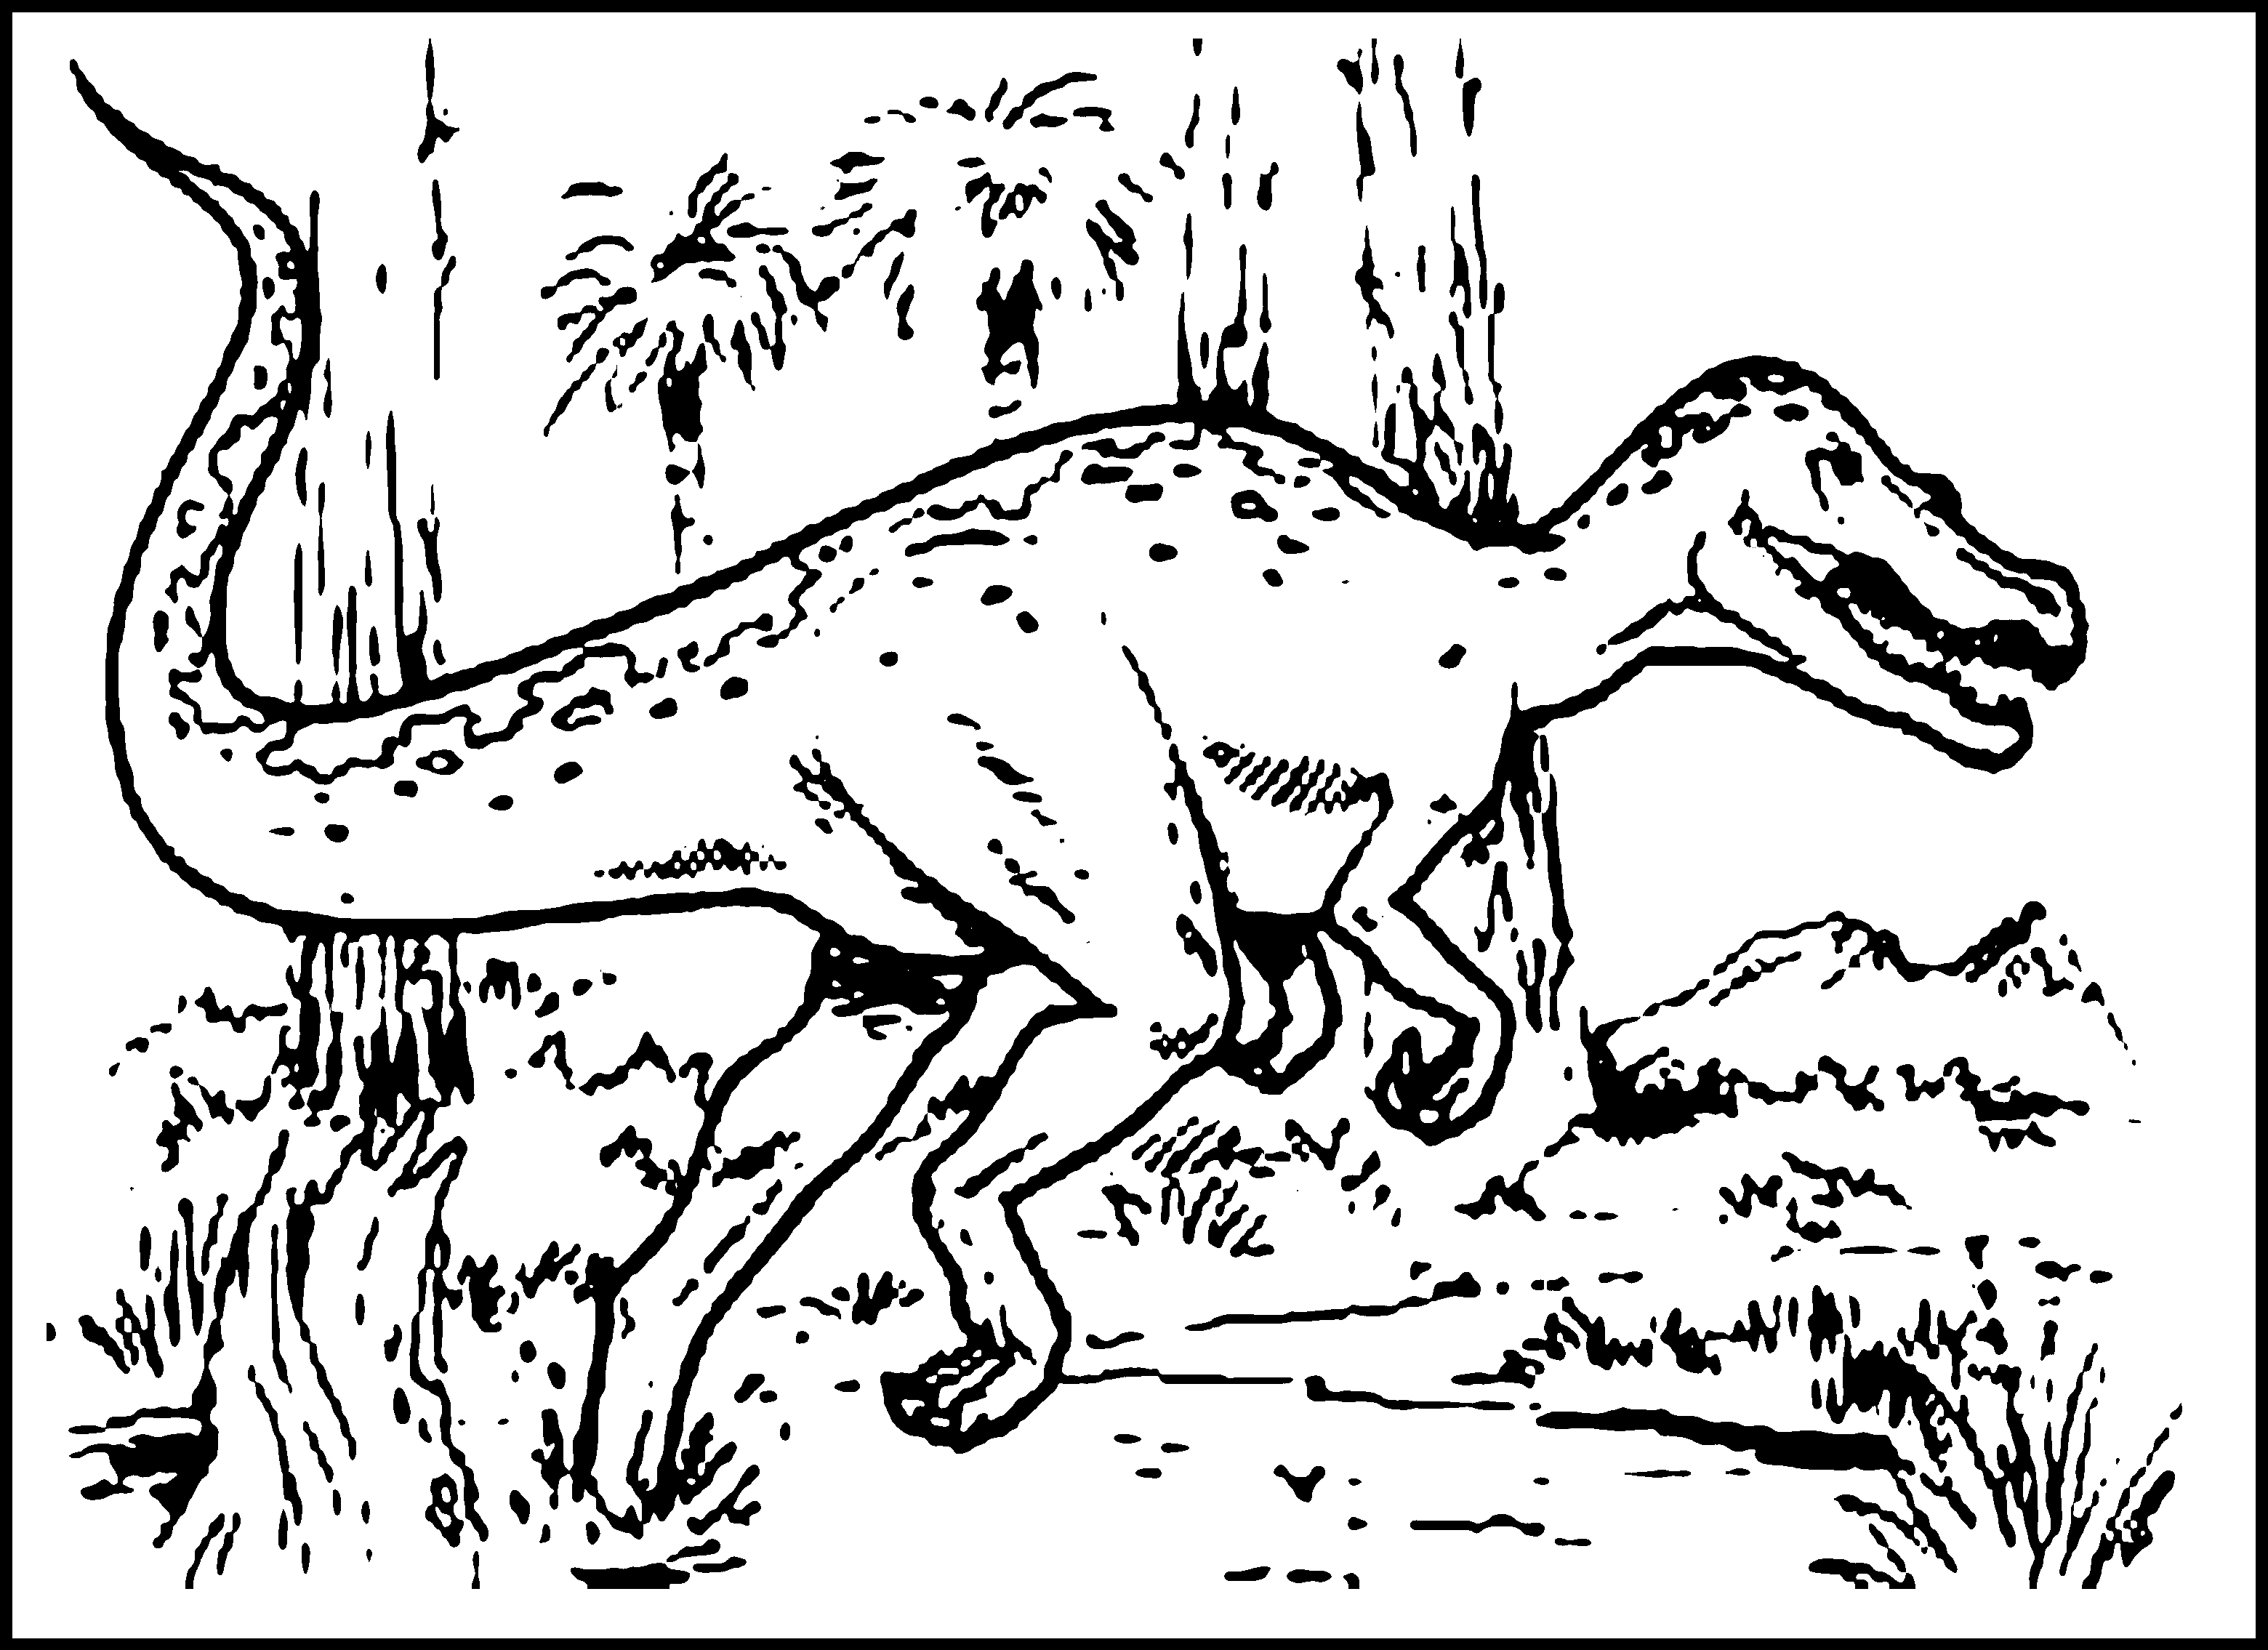 dinosaurs coloring page print download dinosaur t rex coloring pages for kids dinosaurs coloring page